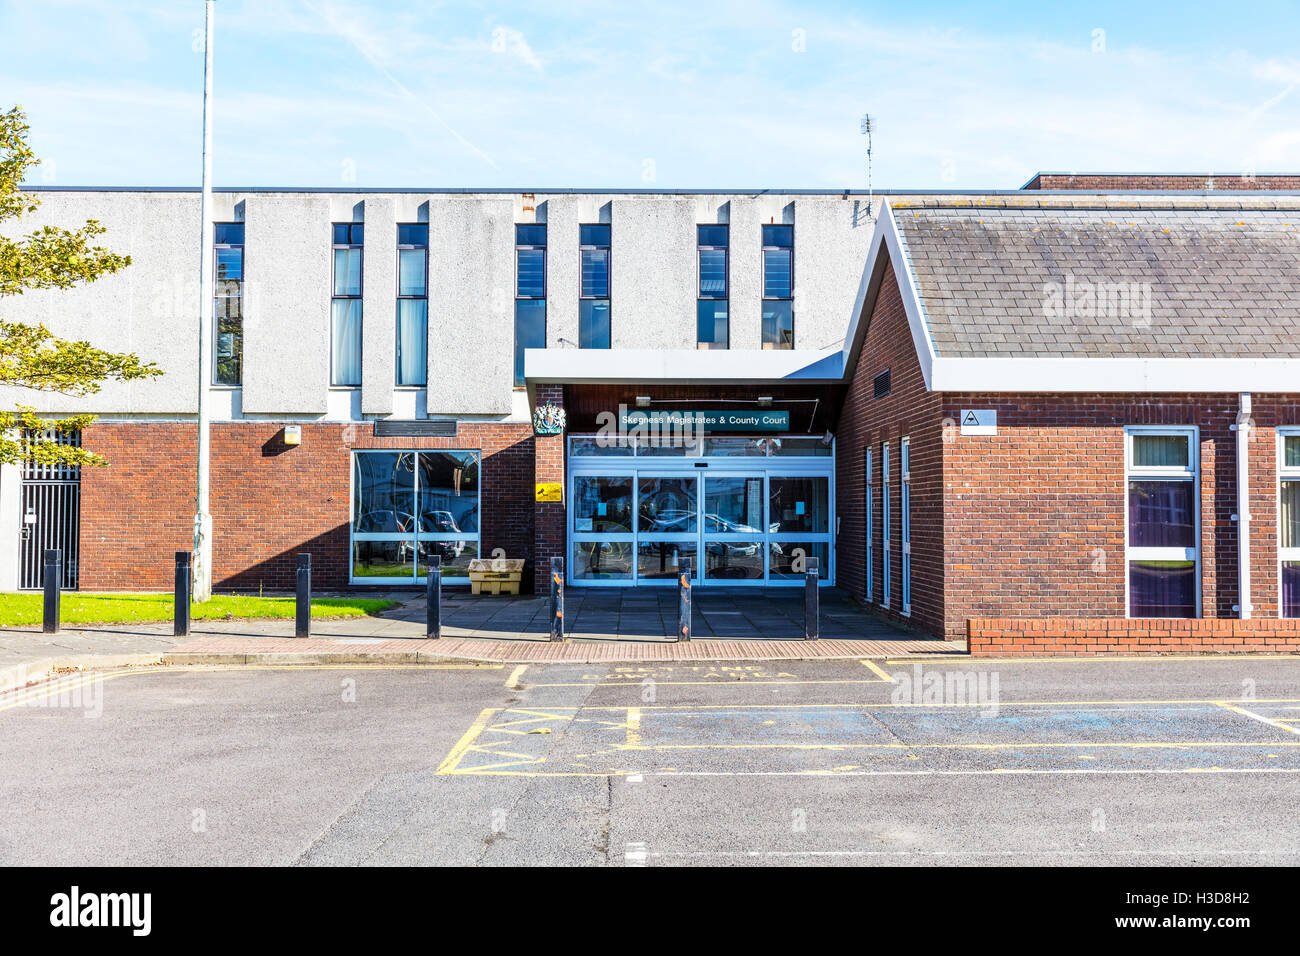 Skegness magistrates and county court magistrate court building exterior front sign signs name buildings entrance - Stock Image